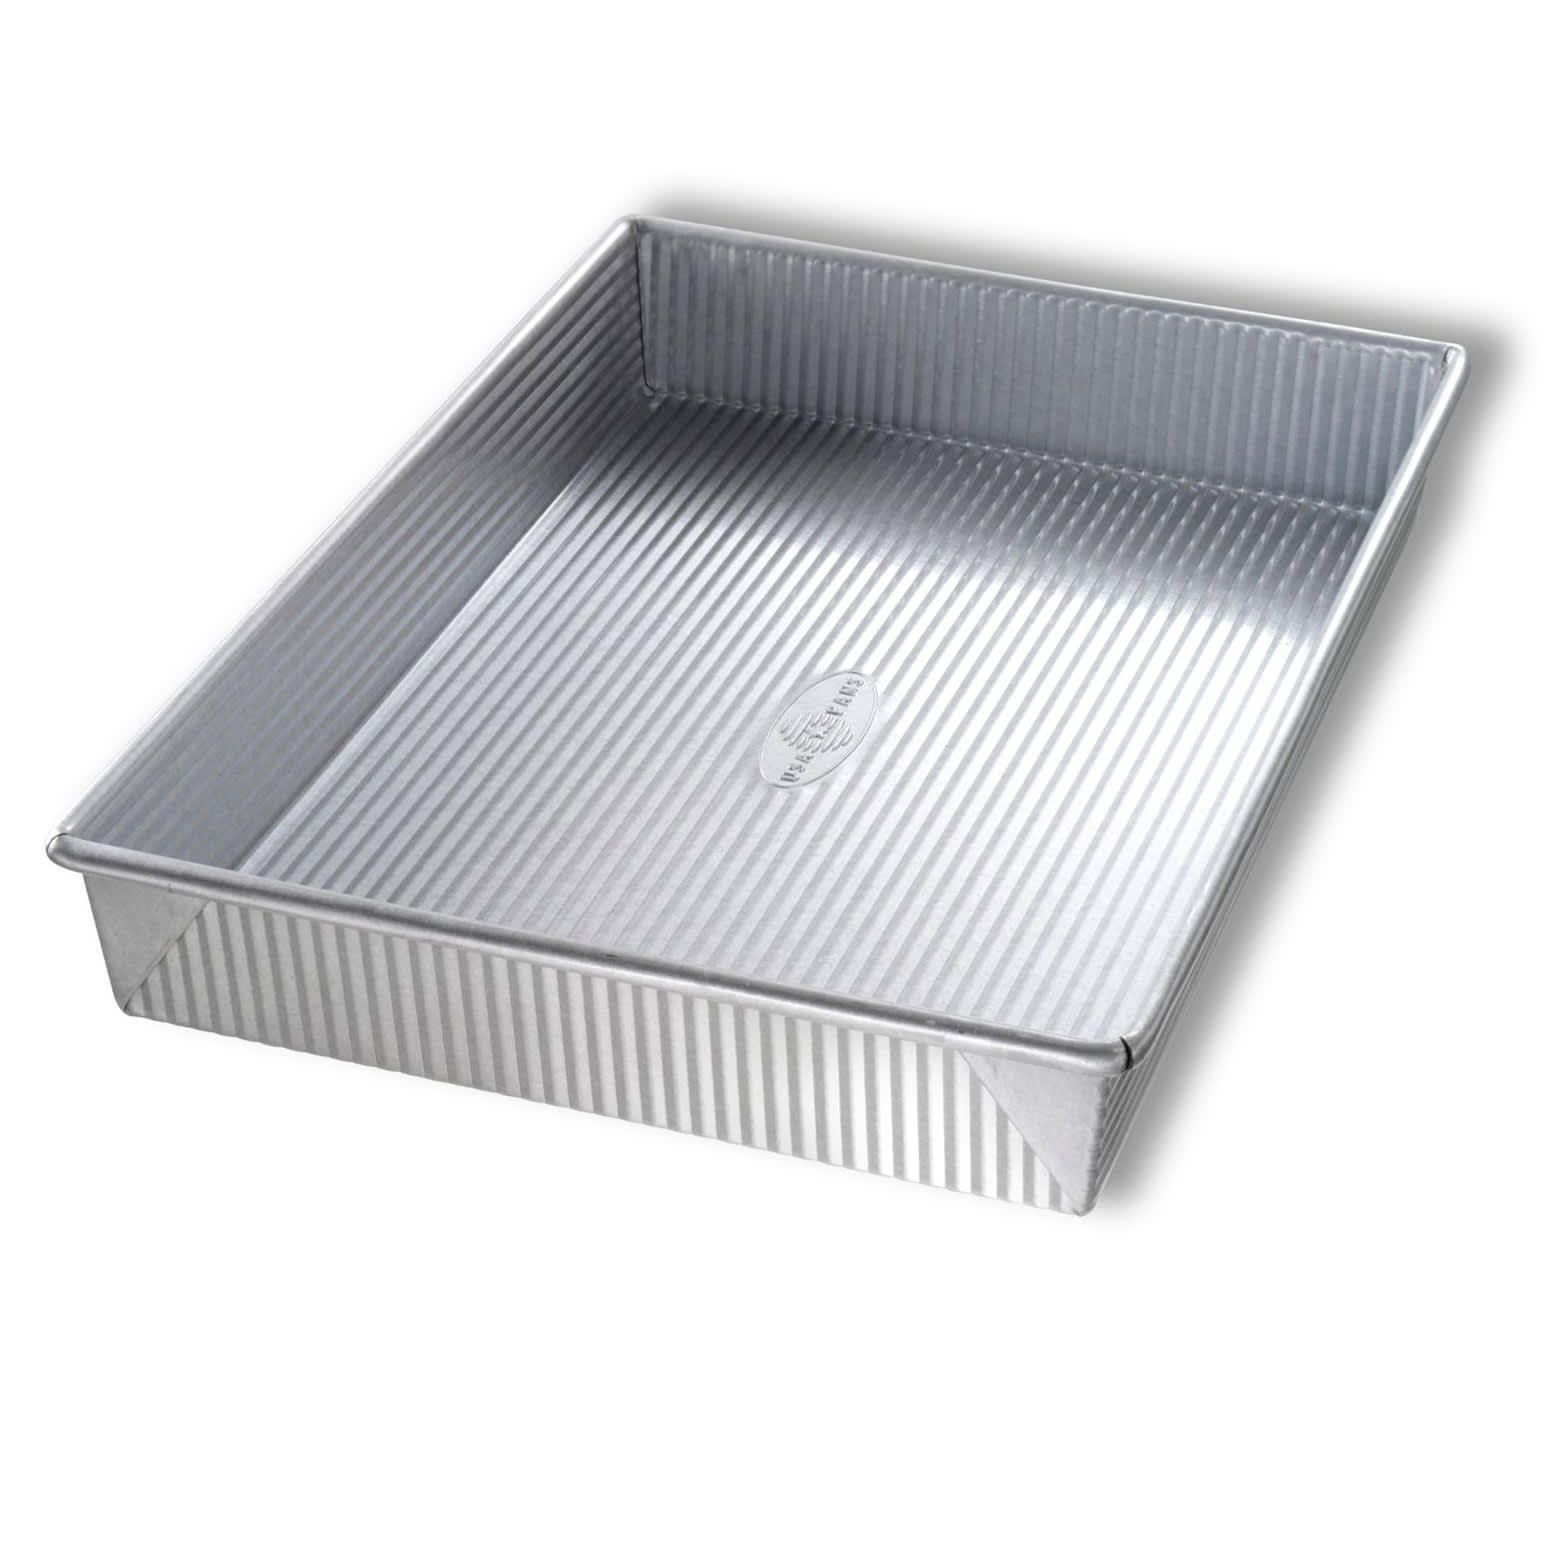 "Chicago Metallic 21100 Cake Pan, 9.56"" x 13.56"" x 2"", AMERICOAT Glazed 22 ga. Aluminized Steel"